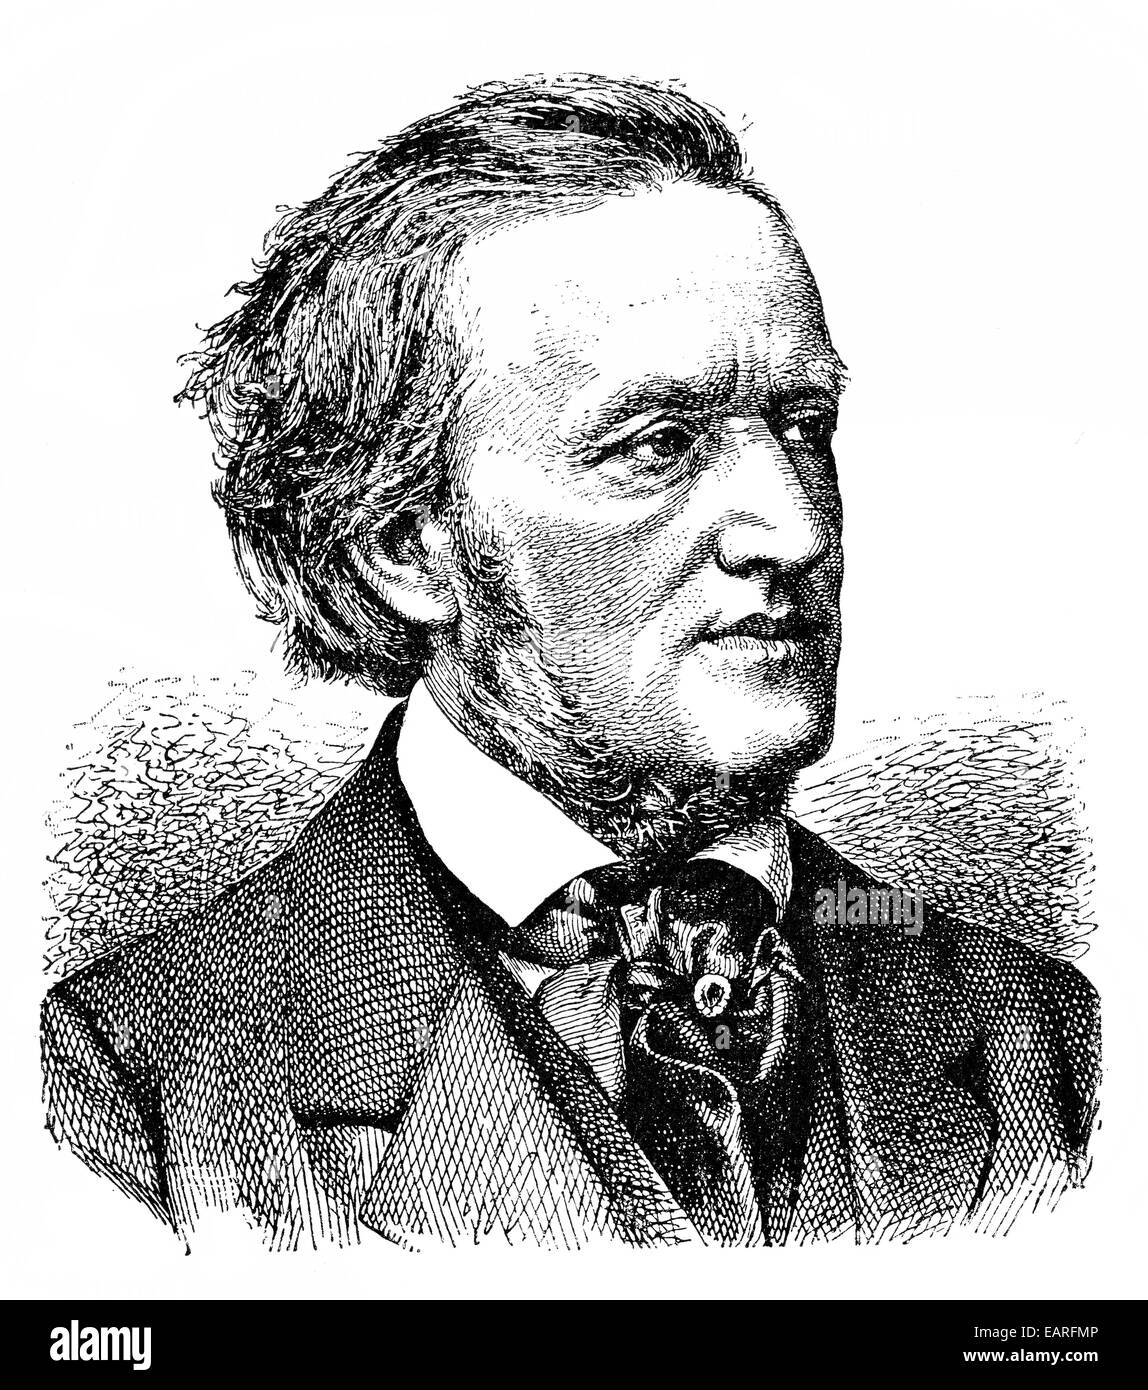 Wilhelm Richard Wagner 1813 - 1883, a German composer, playwright, philosopher, poet, writer, theater director and Stock Photo